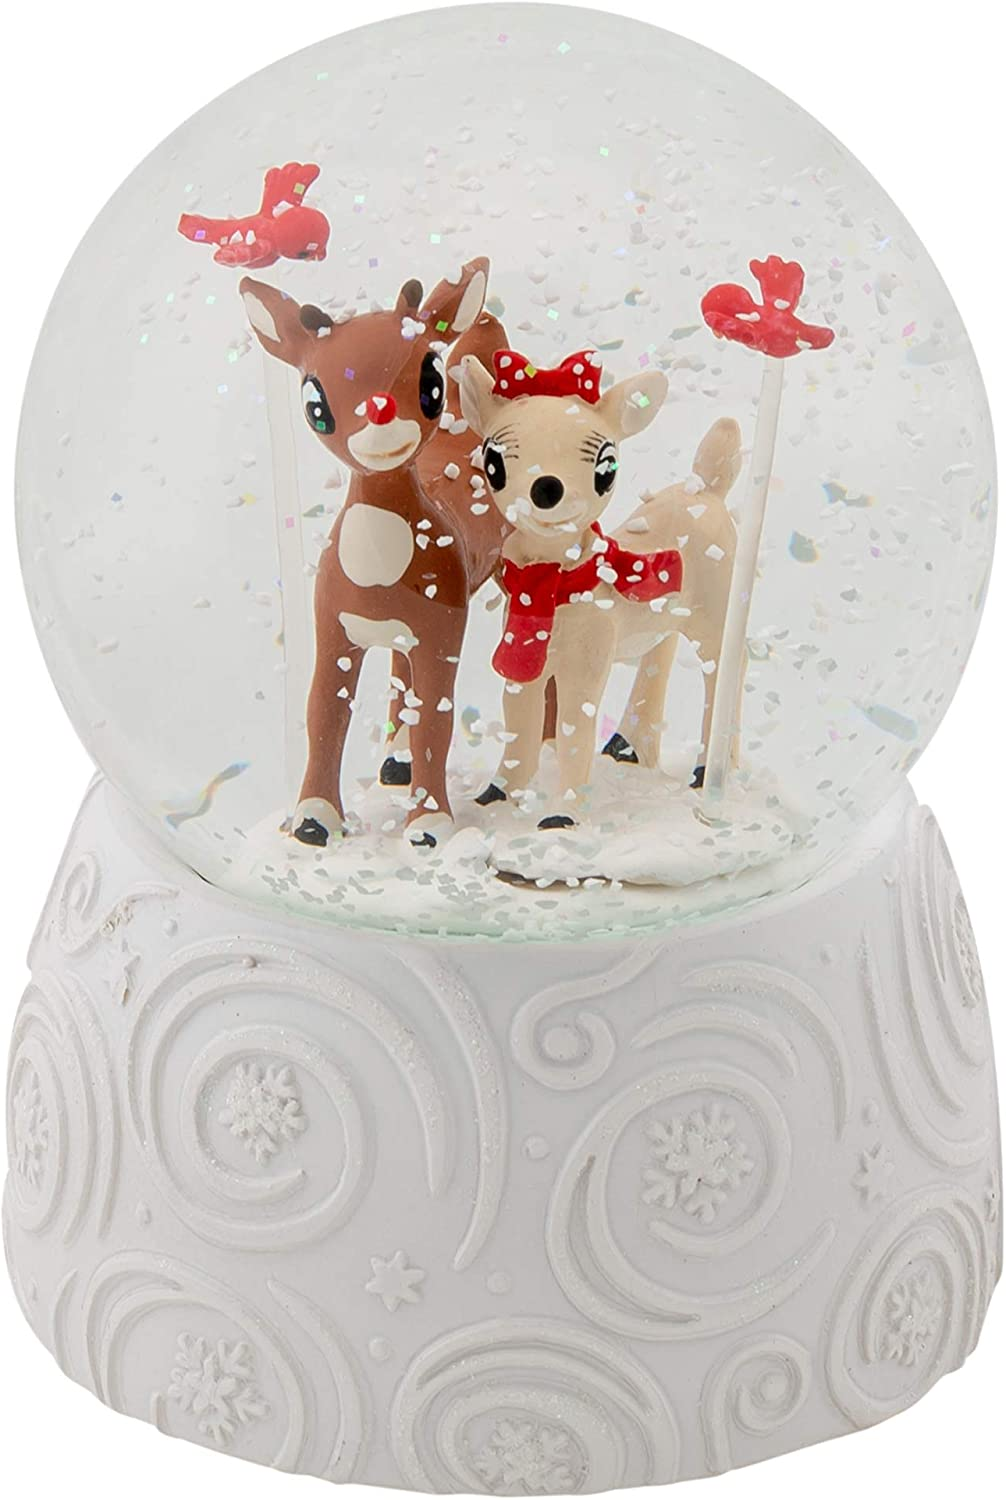 Rudolph With Clarice Musical 6 Inch Globe Plays The Tune Rudolph The Red Nose Reindeer